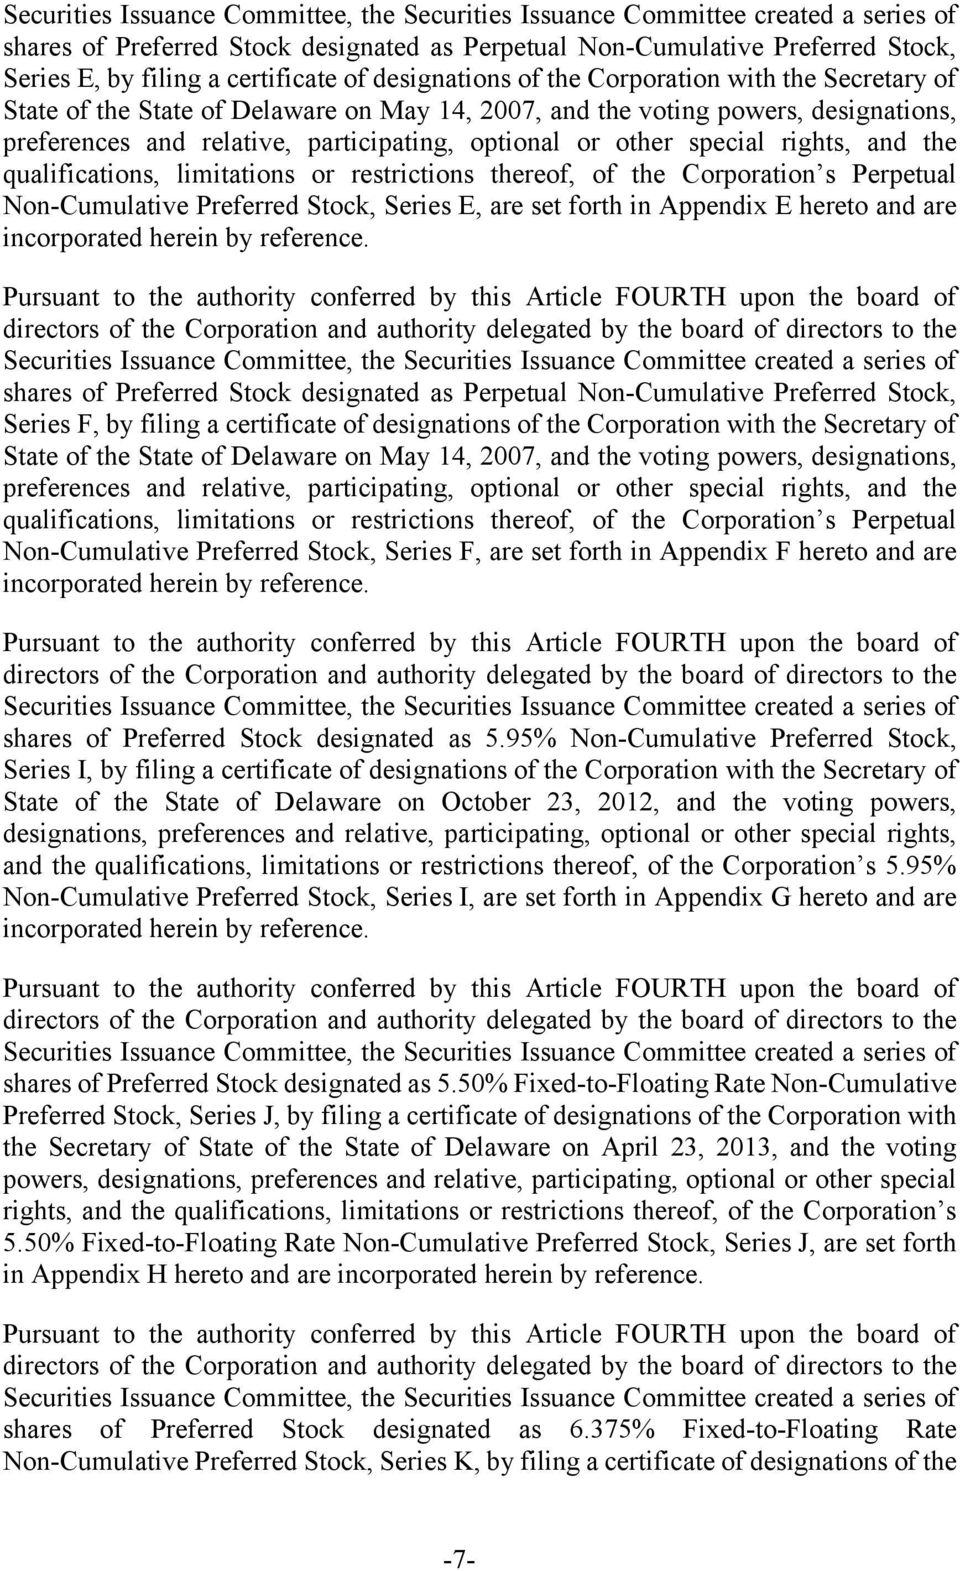 optional or other special rights, and the qualifications, limitations or restrictions thereof, of the Corporation s Perpetual Non-Cumulative Preferred Stock, Series E, are set forth in Appendix E